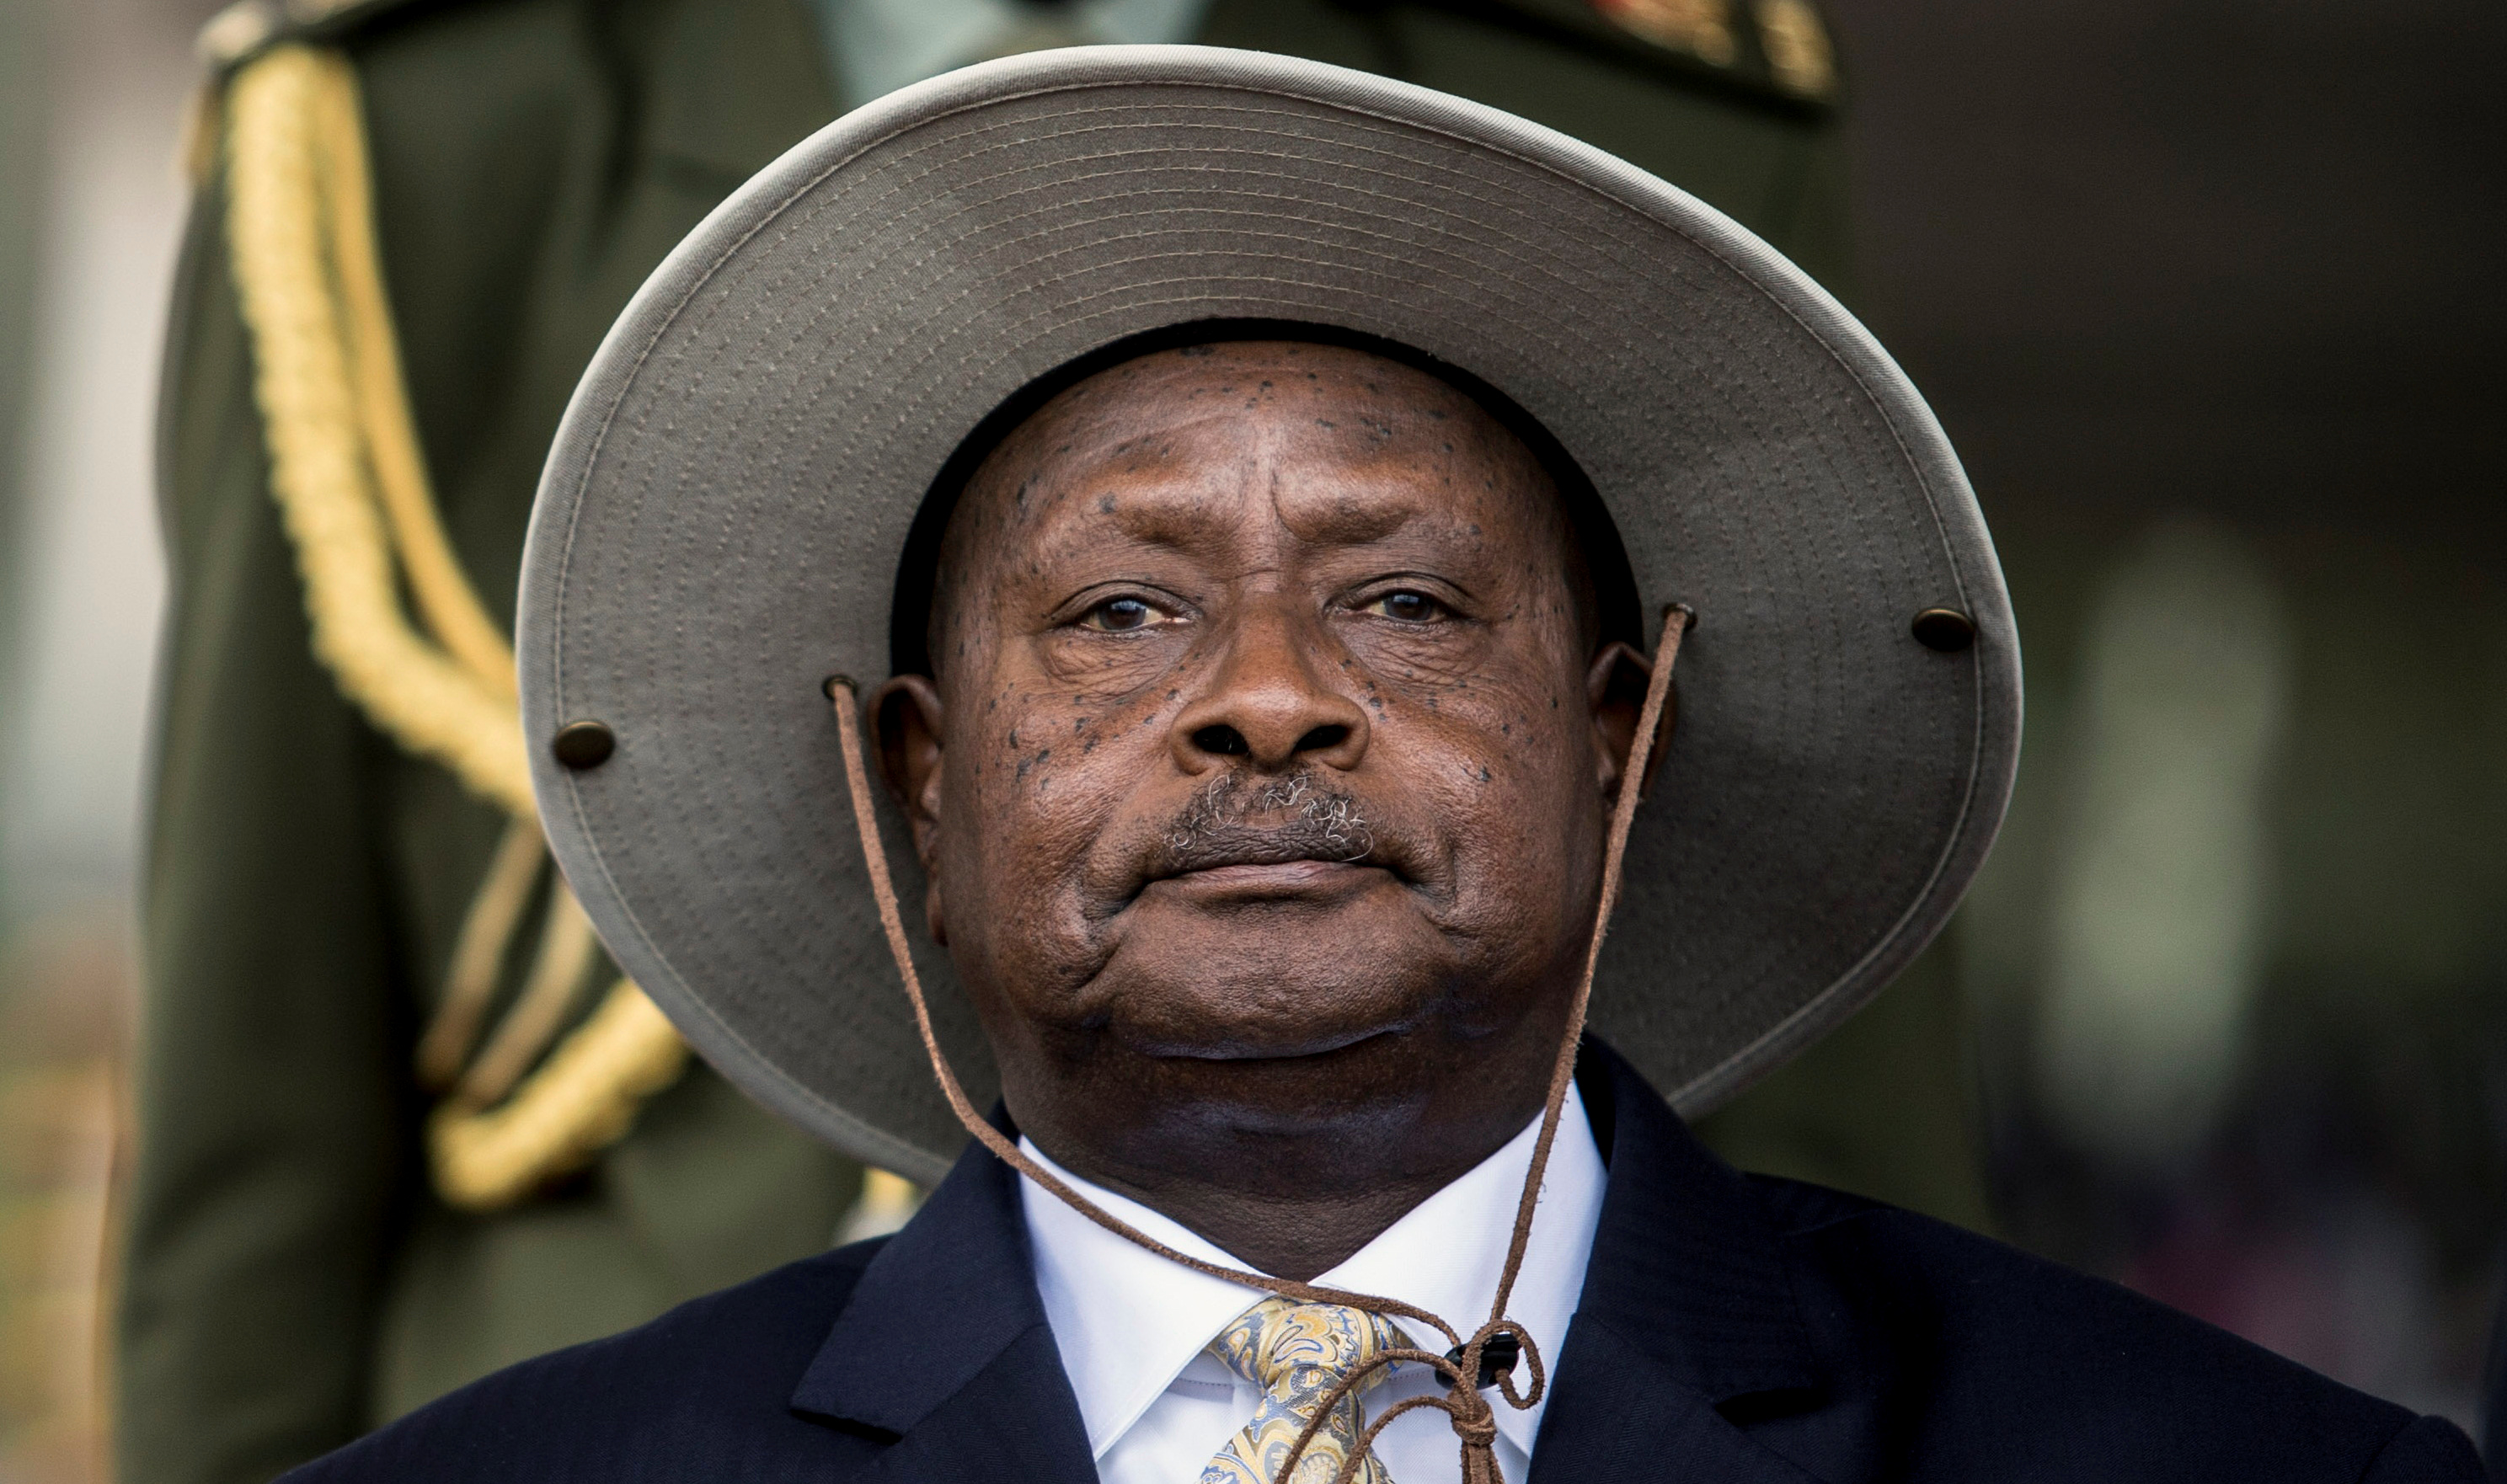 Ugandan President Yoweri Museveni attends his swearing-in ceremony in Uganda's capital Kampala on May 12, 2016